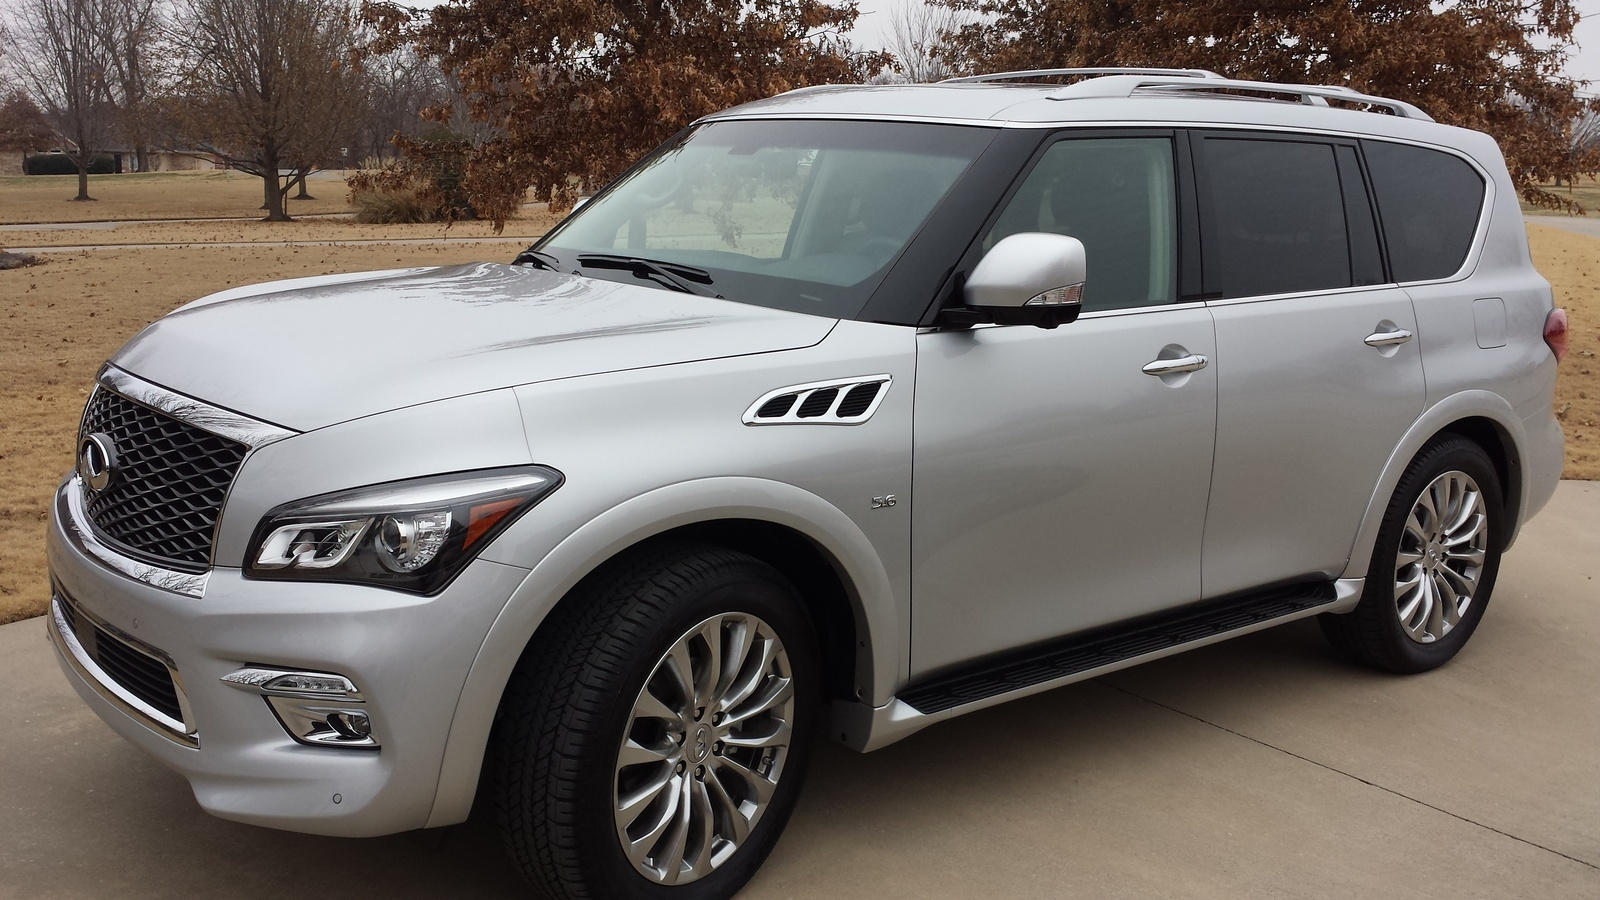 New 2015 / 2016 Infiniti QX80 For Sale